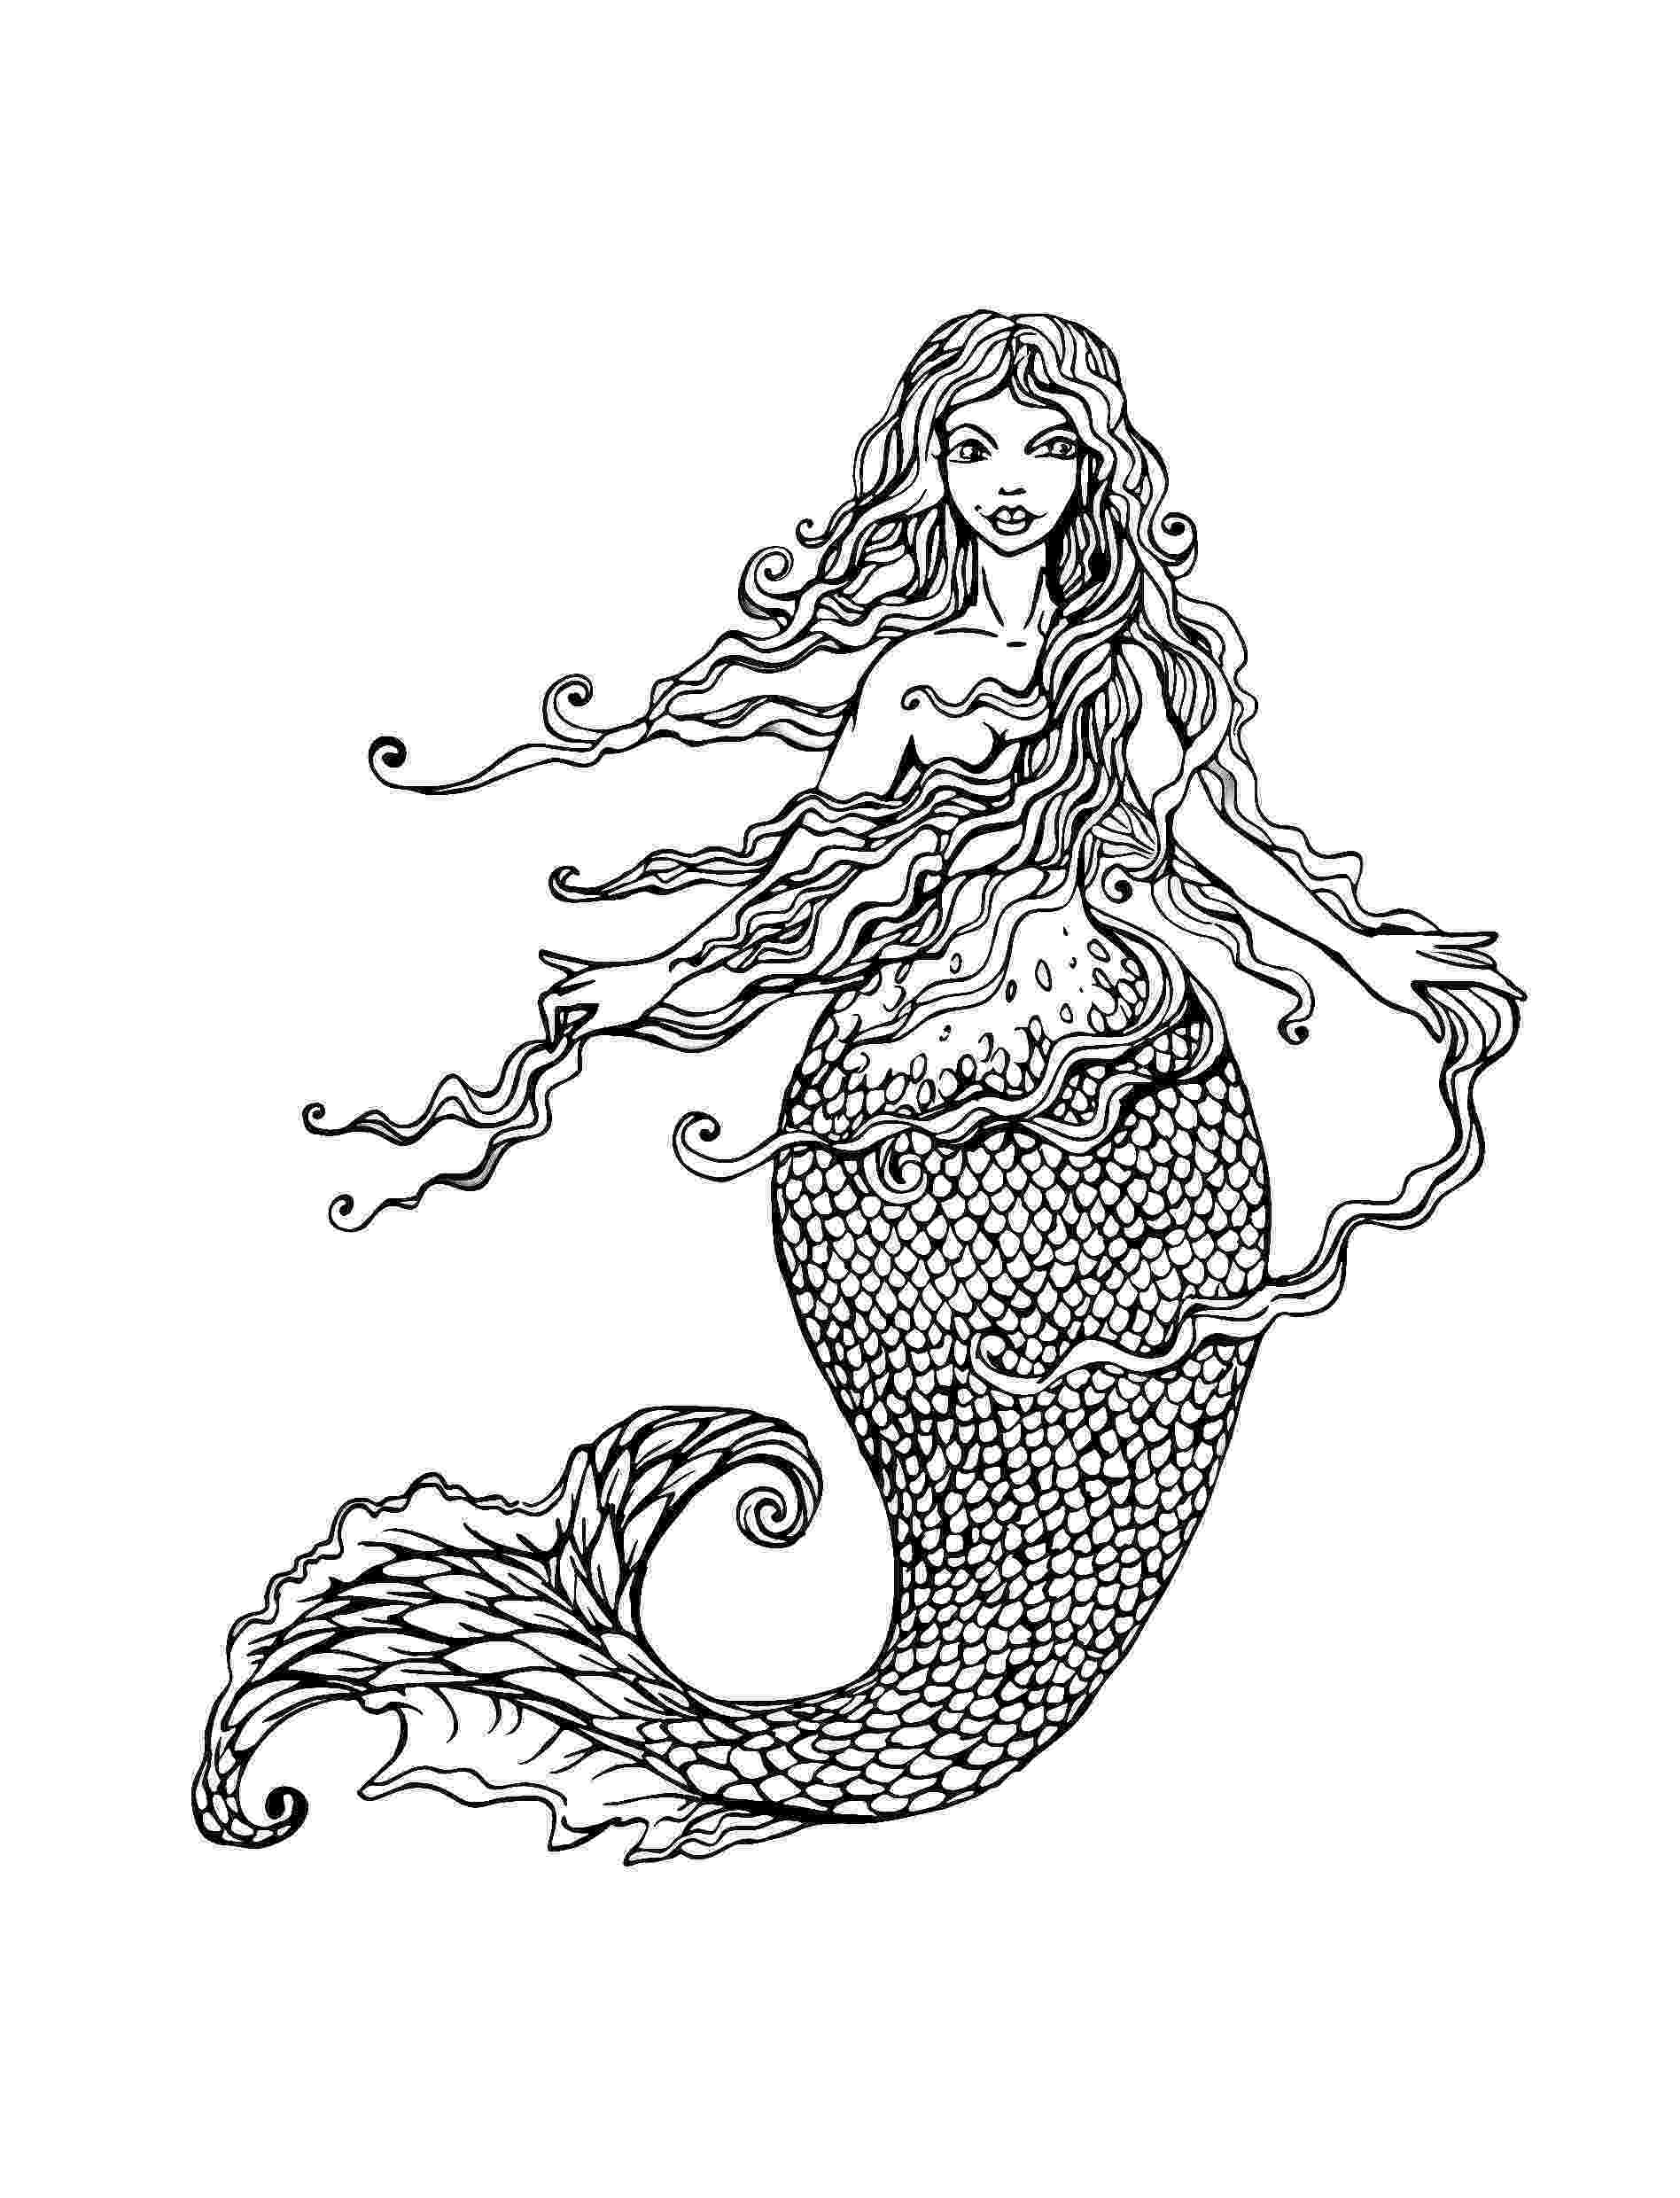 mermaid coloring pages for adults mermaid coloring pages for adults best coloring pages pages adults coloring for mermaid